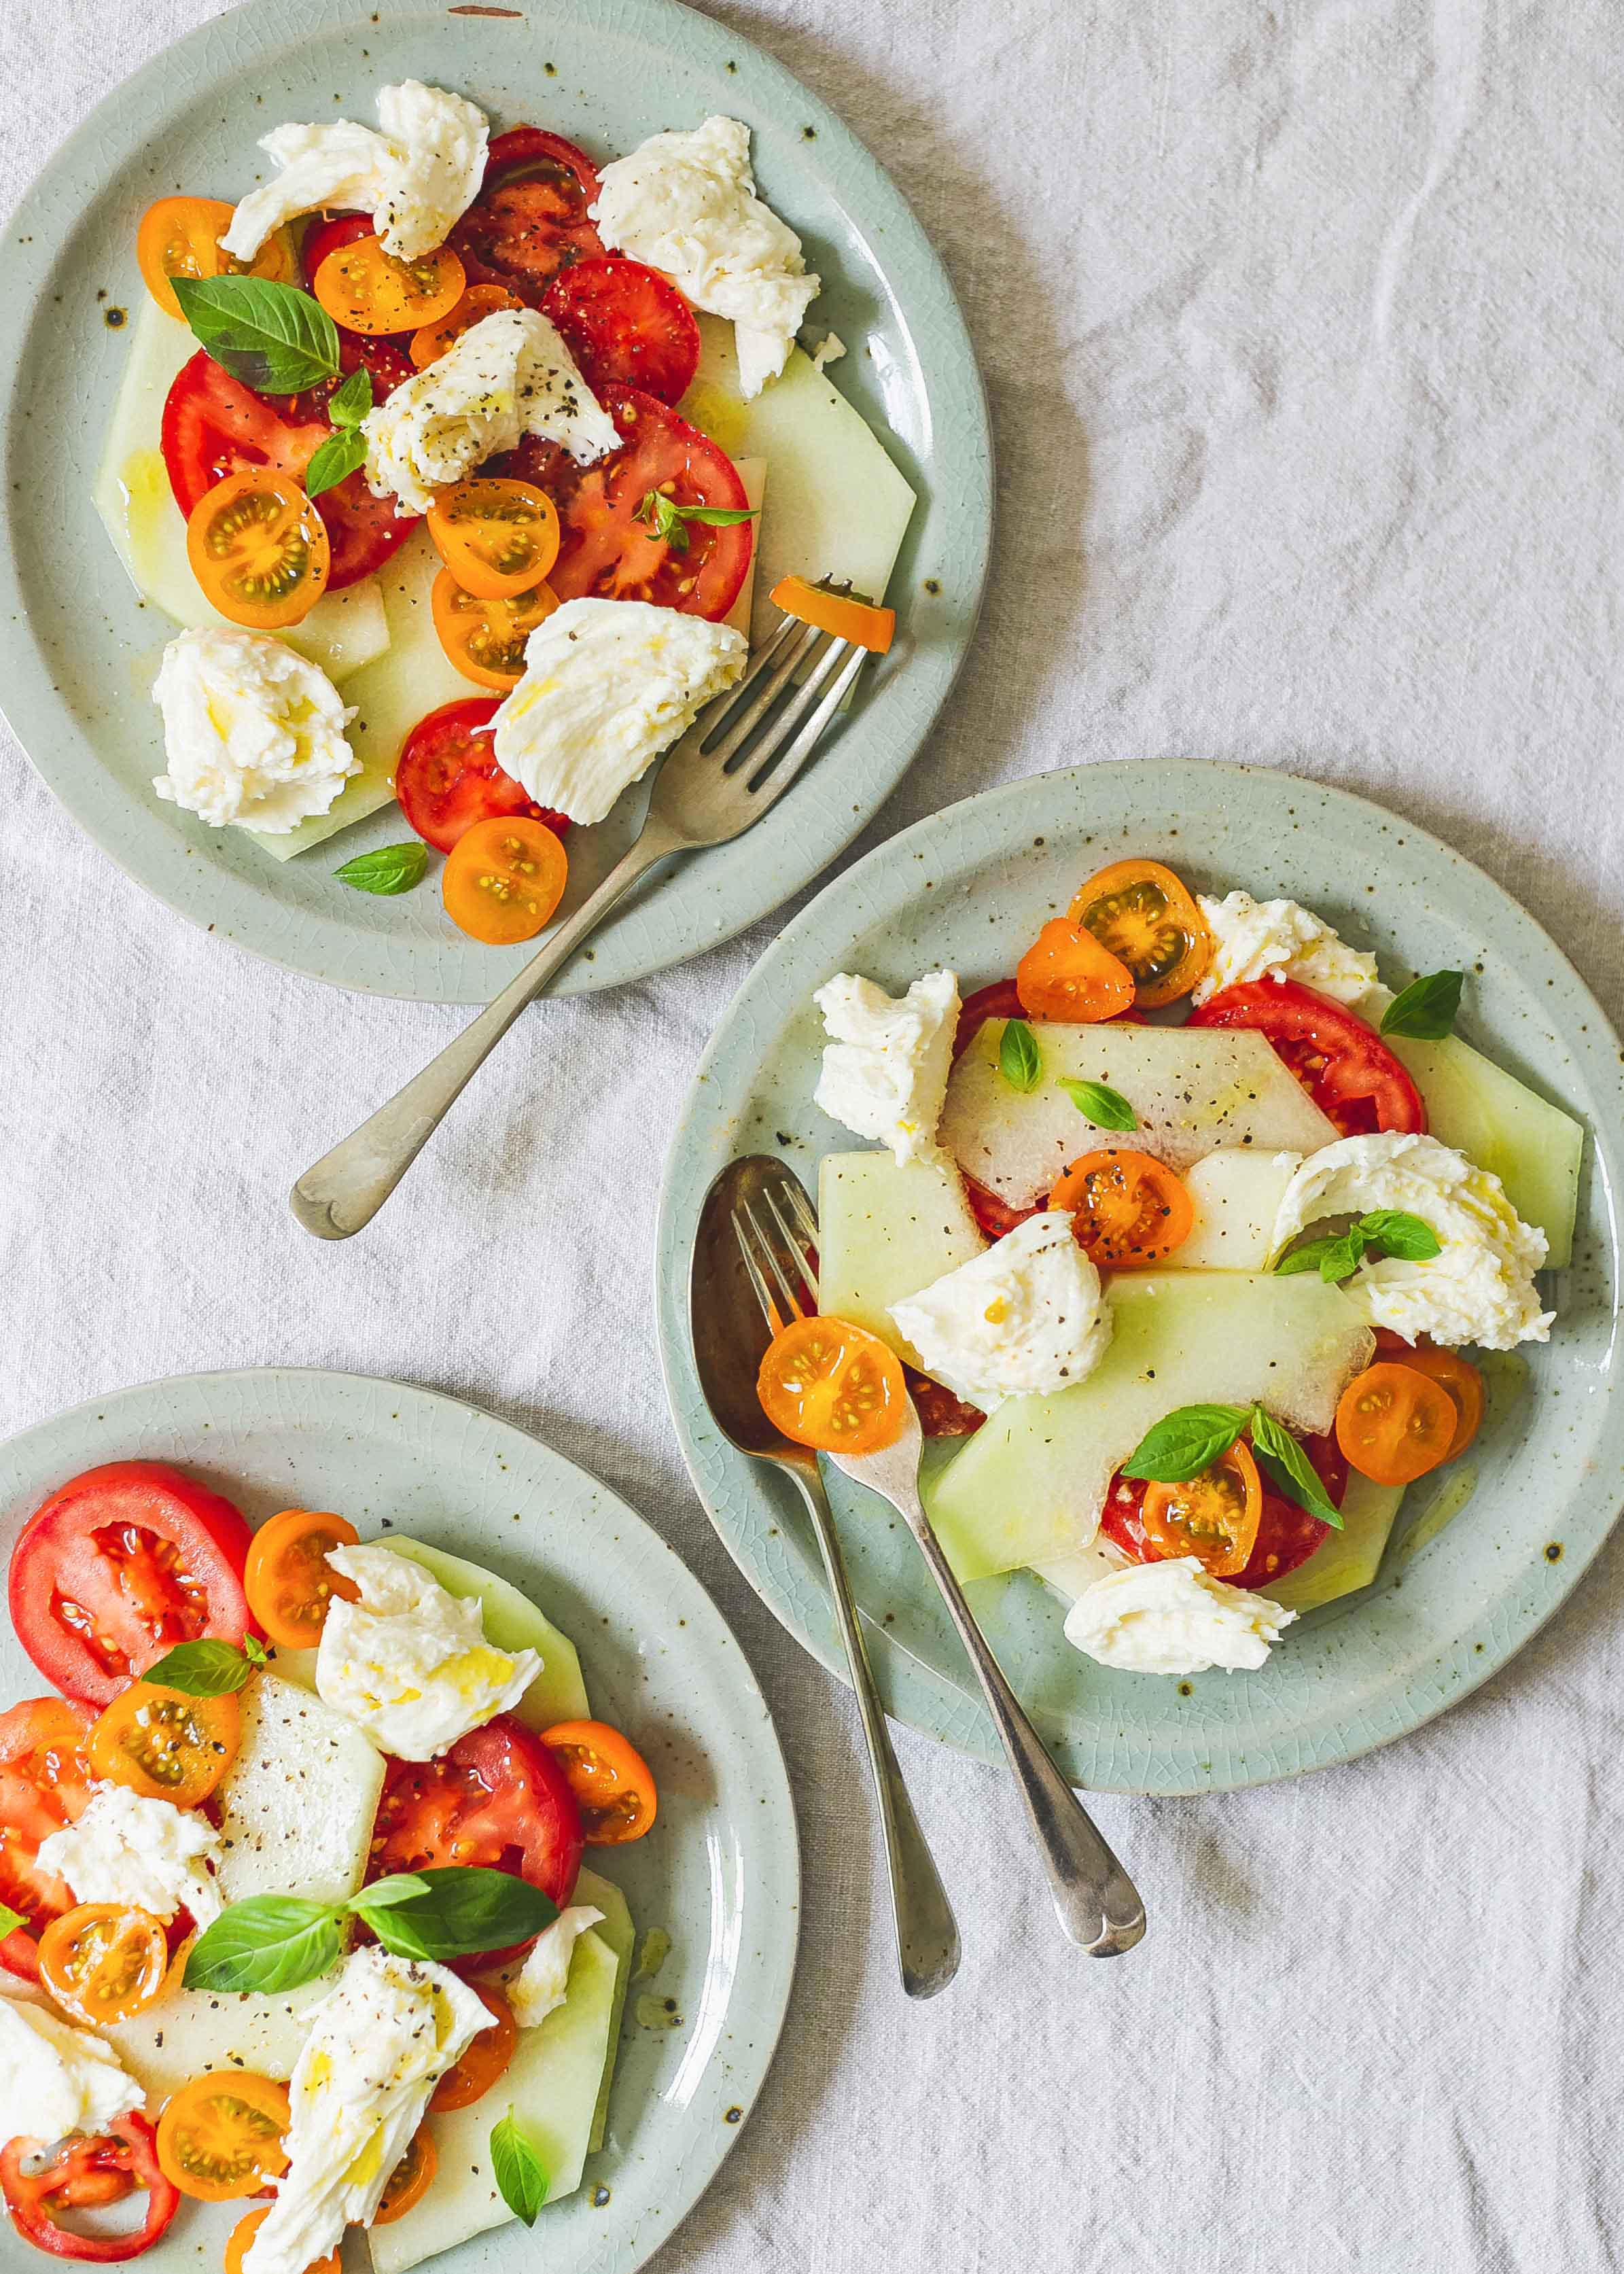 Three plates of melon, tomato and moz salad